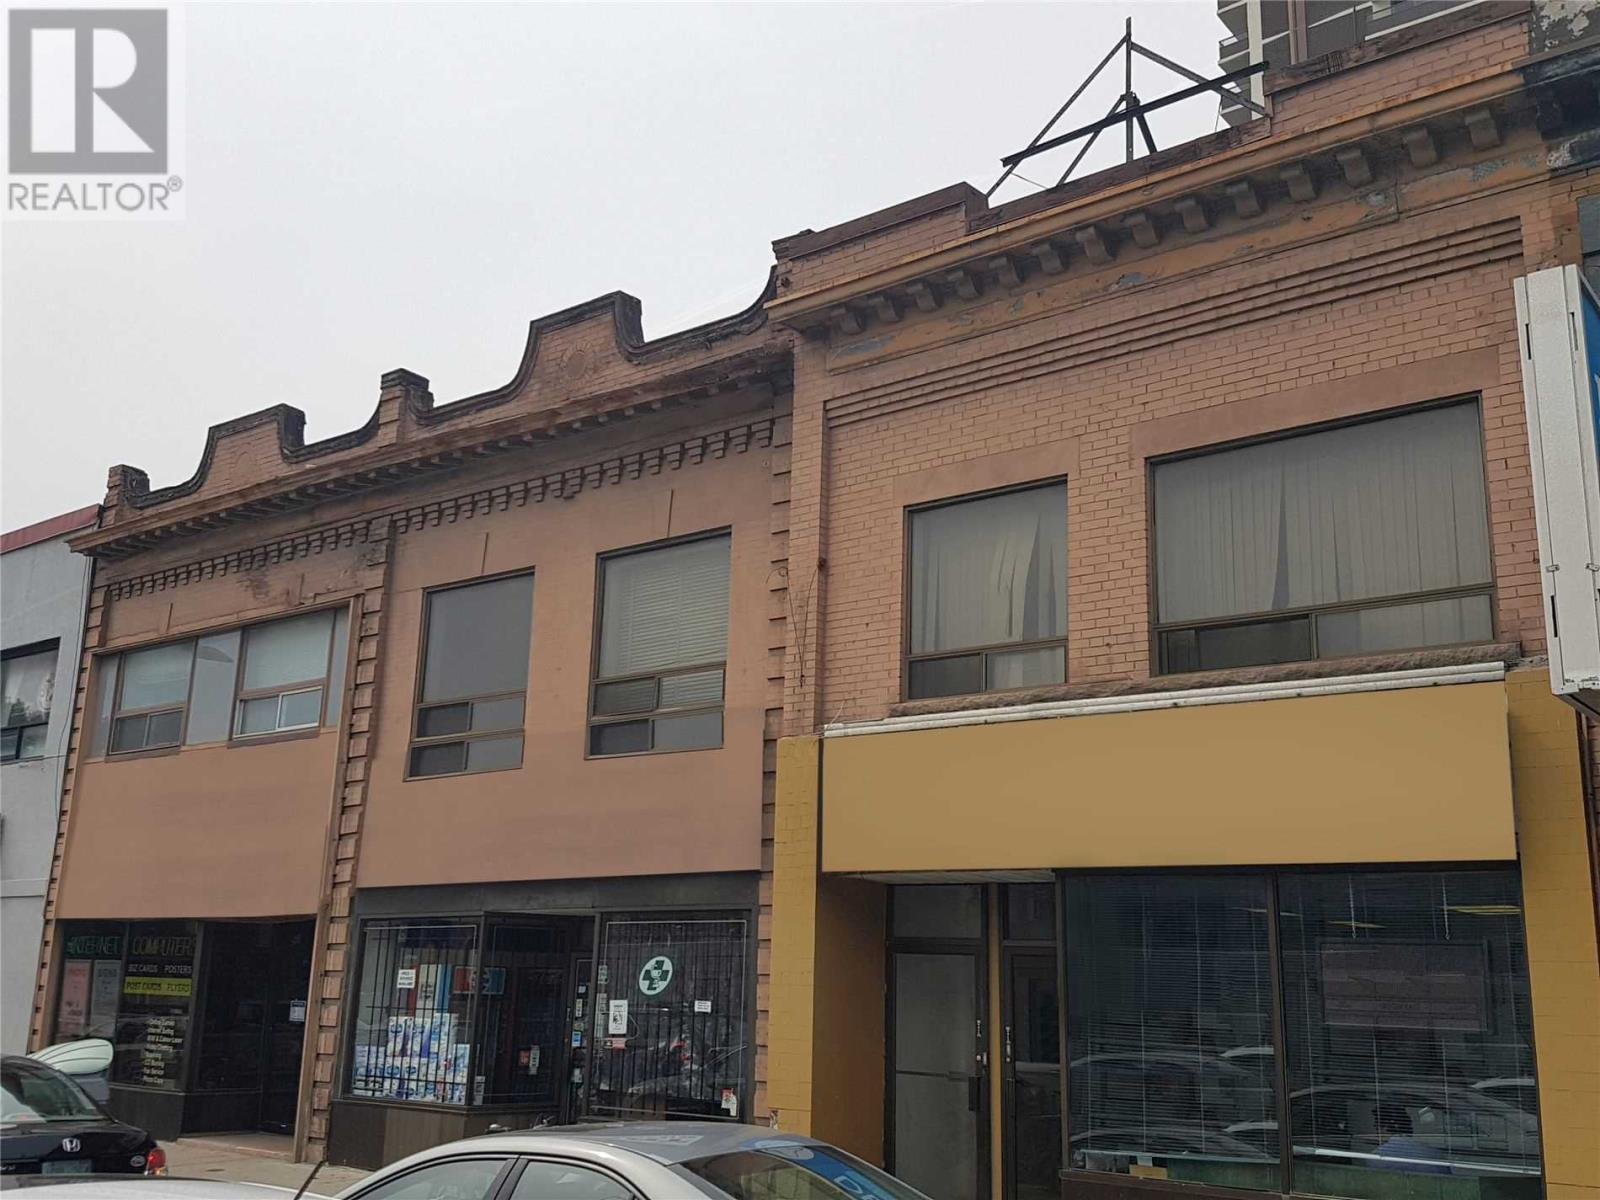 942 ST. CLAIR AVE W